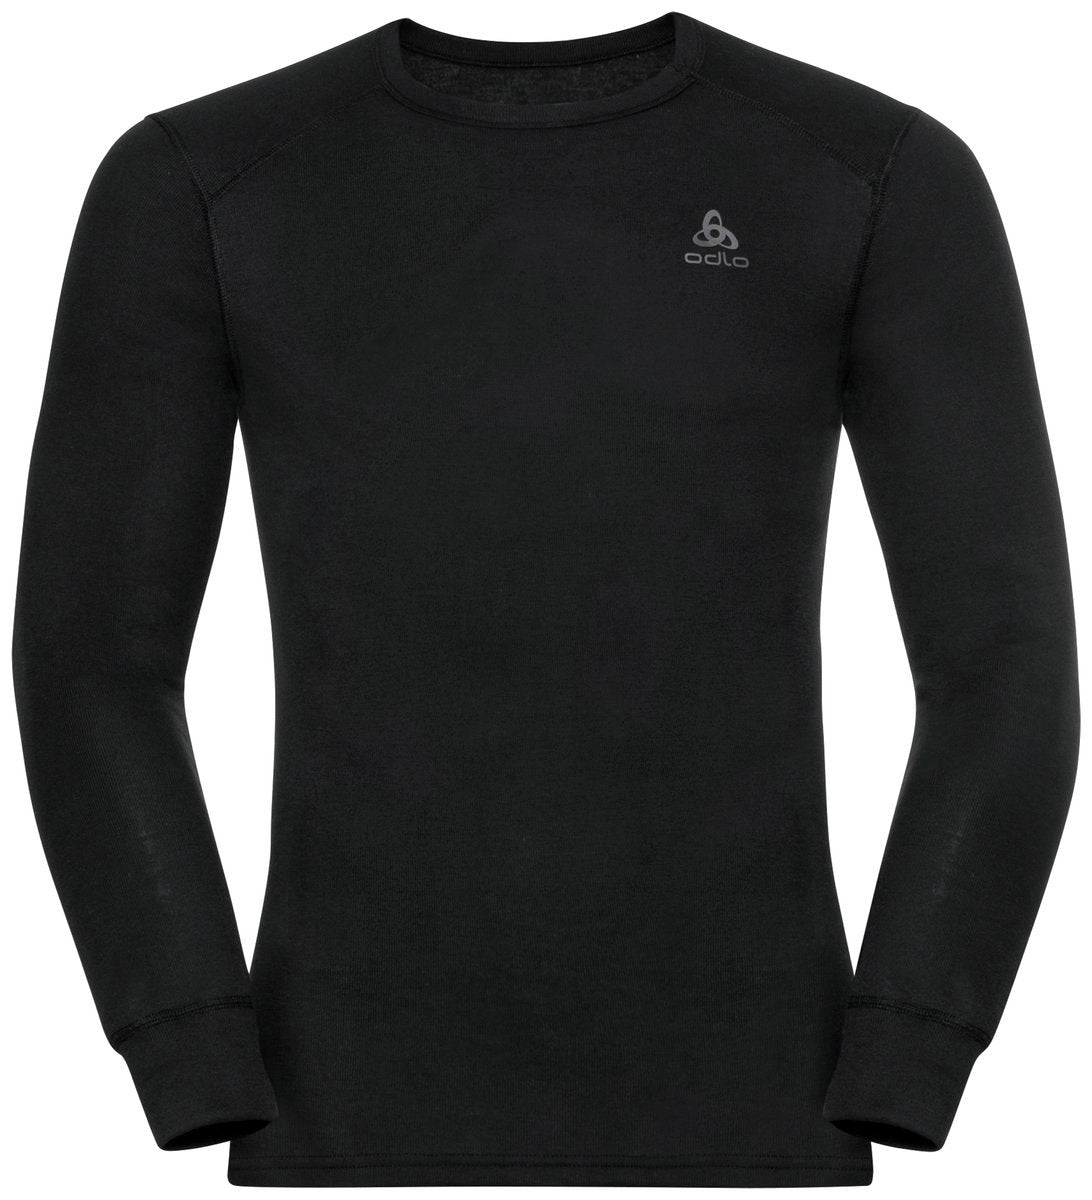 Odlo Men's ACTIVE WARM ECO Long-Sleeve Baselayer Top